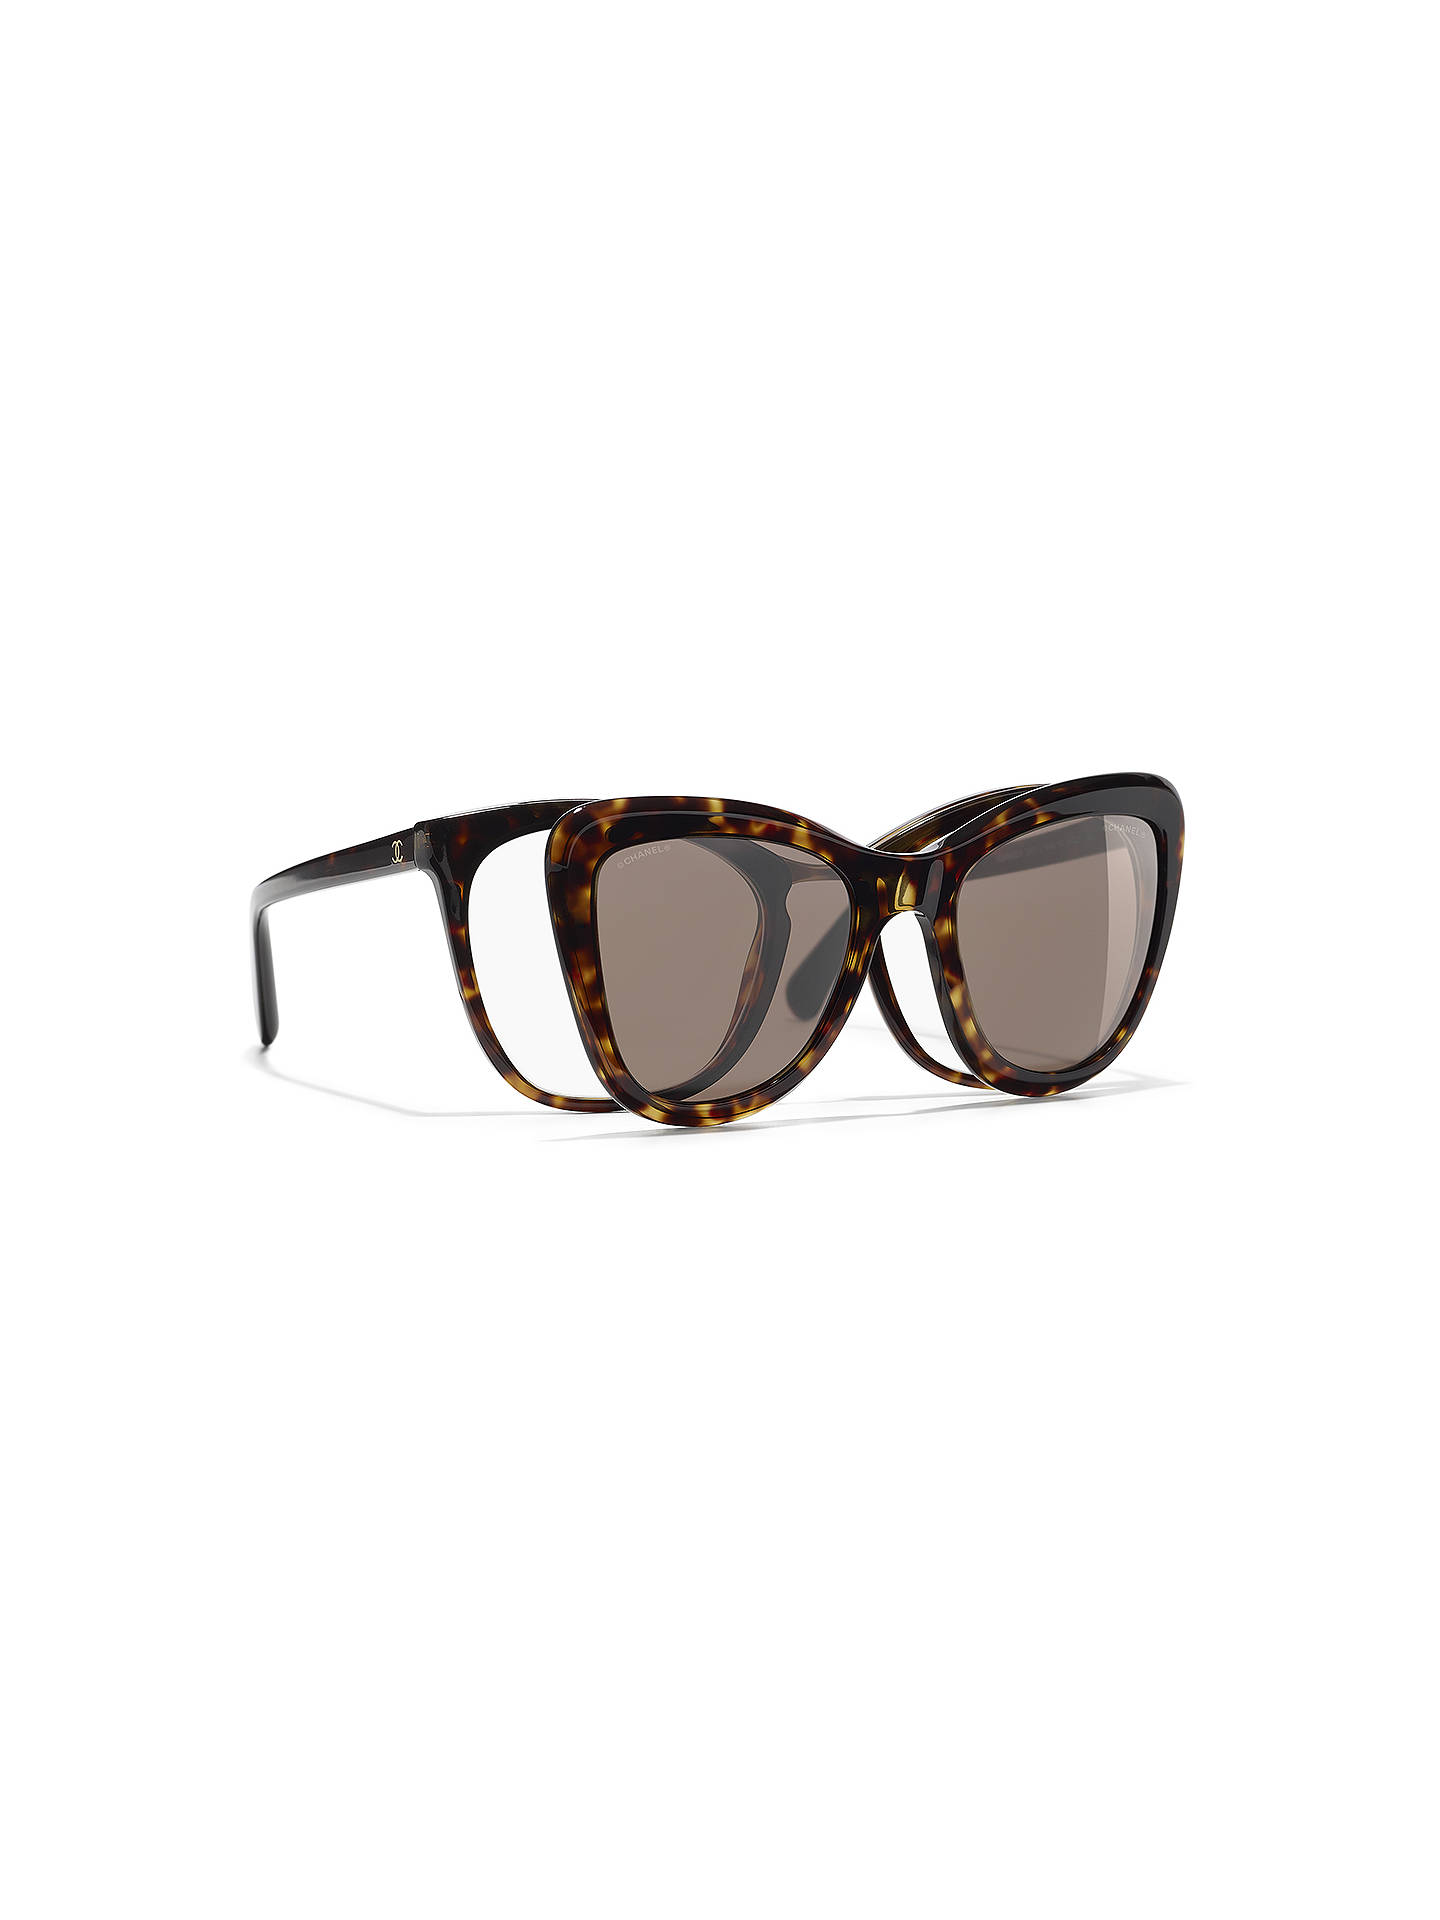 aa4c3e9263e Buy CHANEL Clip On Sunglasses CH5393 Tortoise Online at johnlewis.com ...